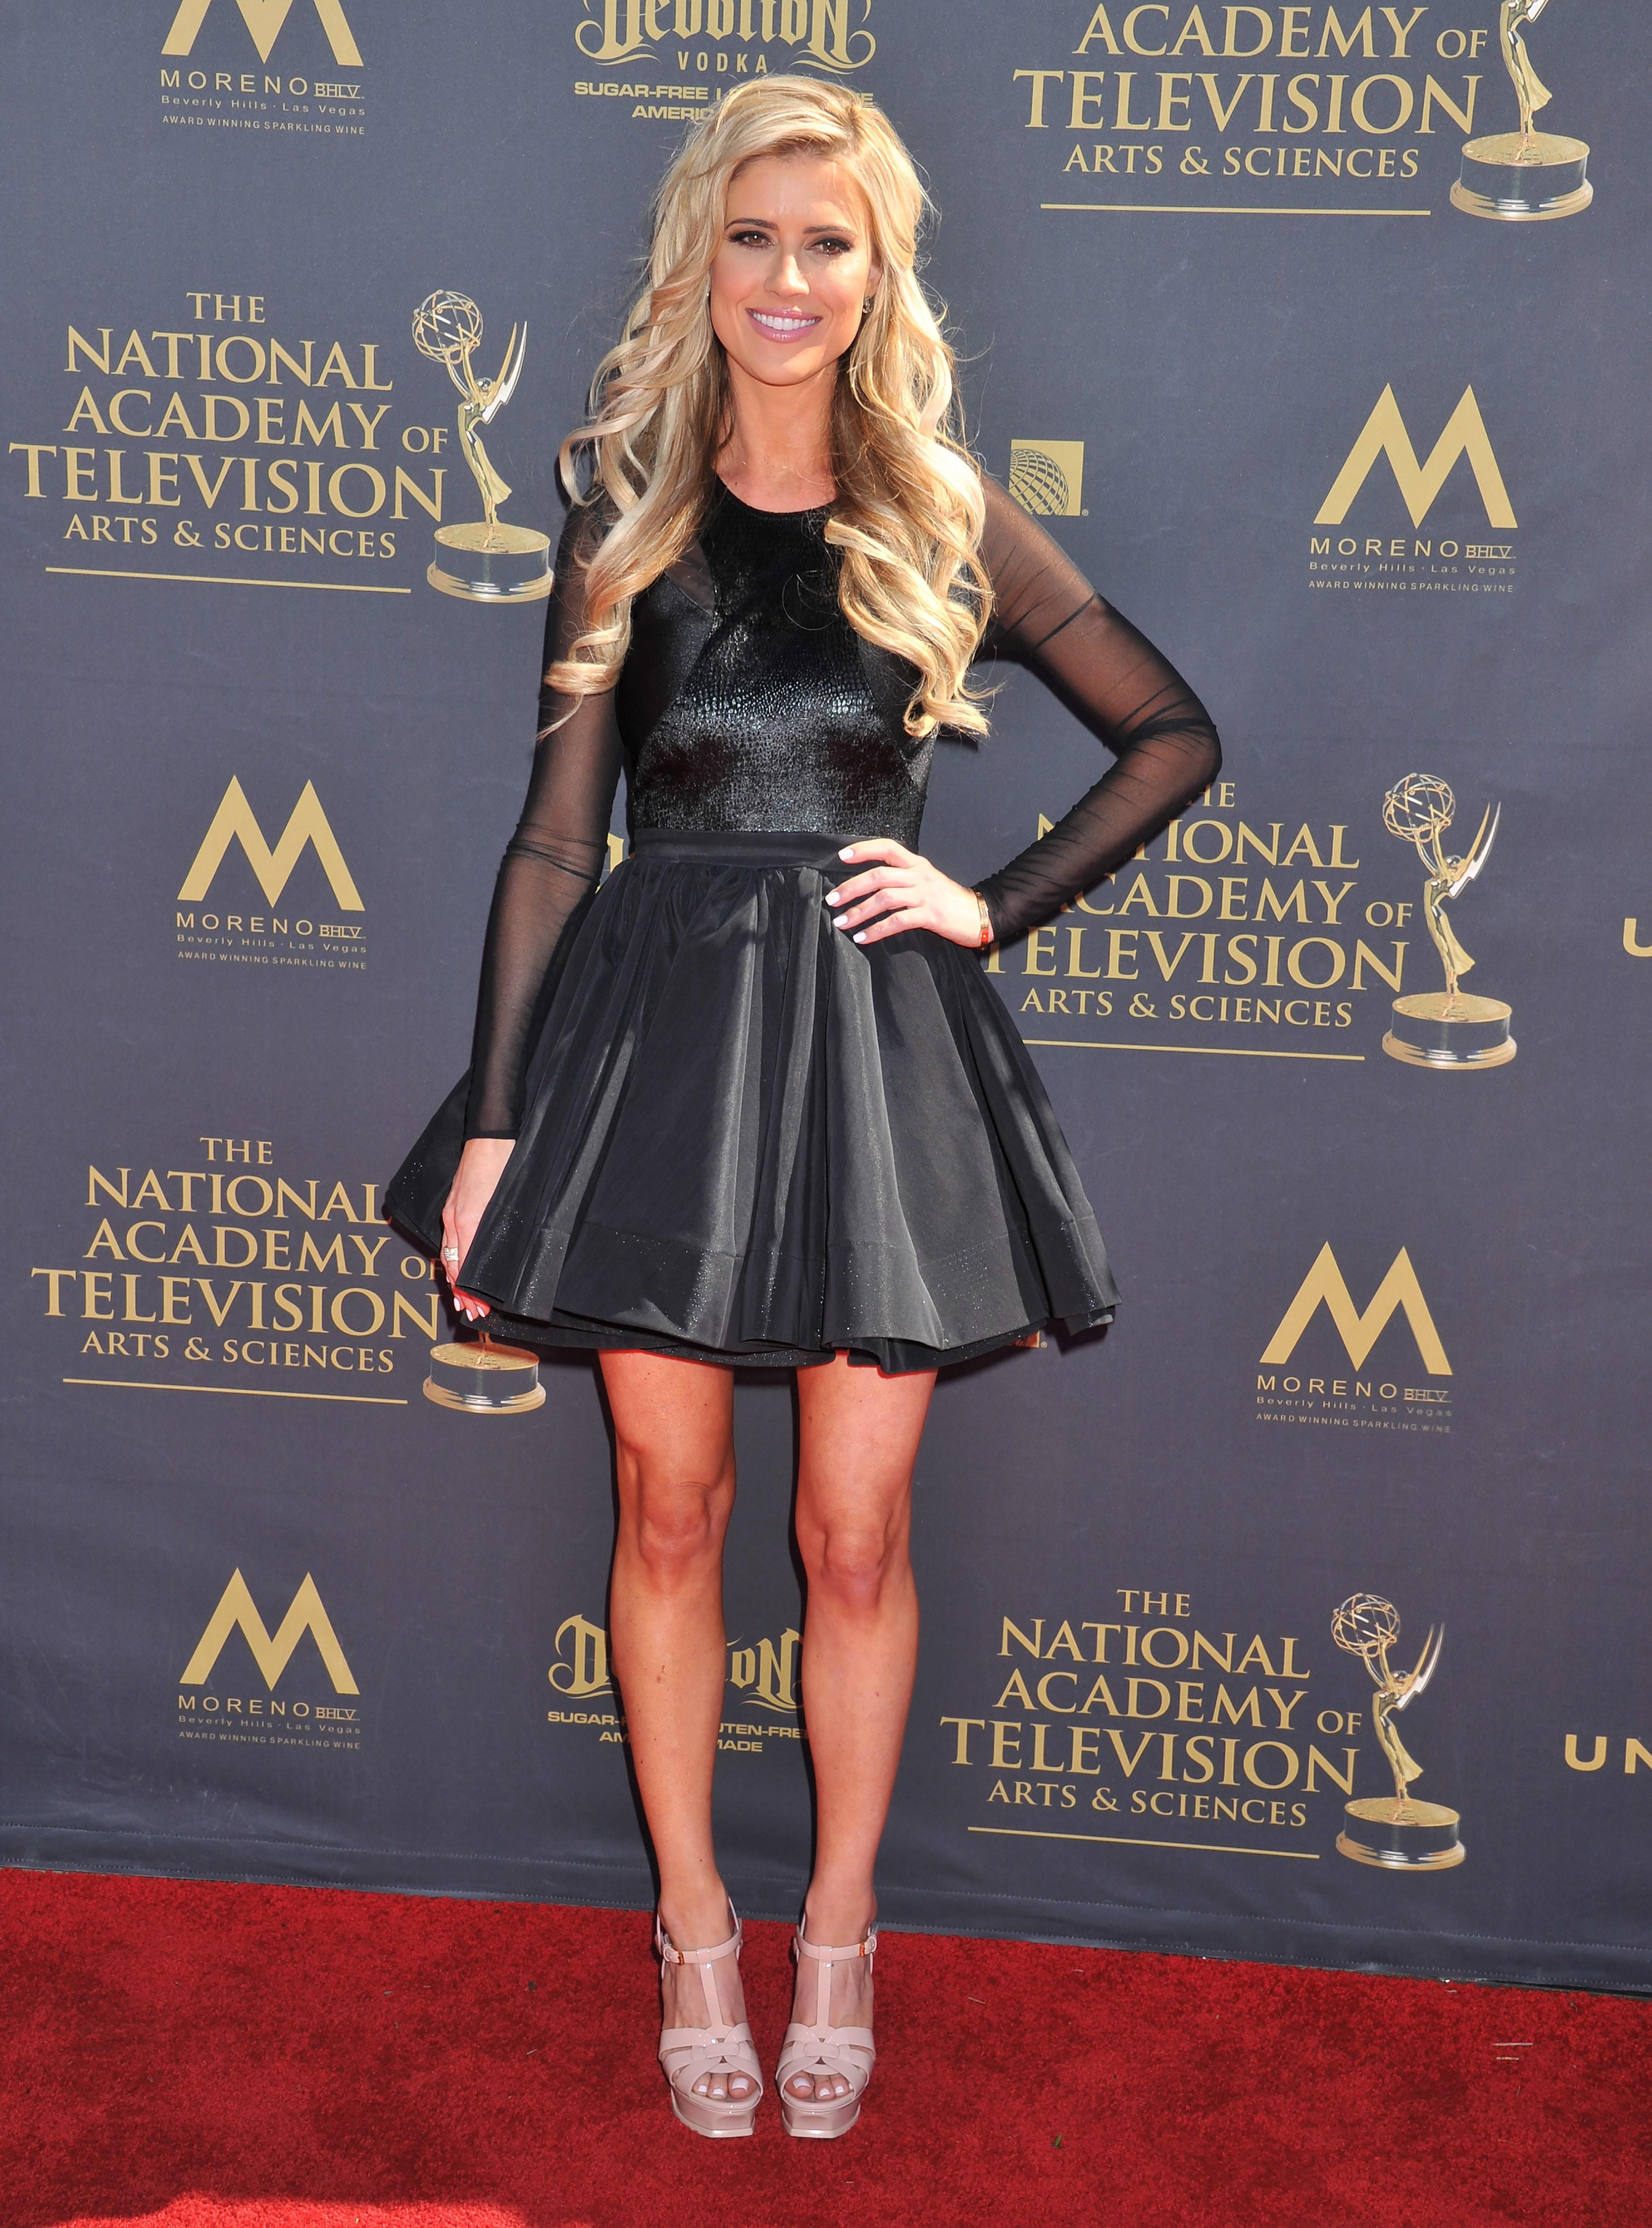 HGTV's Christina El Moussa Ties the Knot With Ant Anstead! Christina Anstead